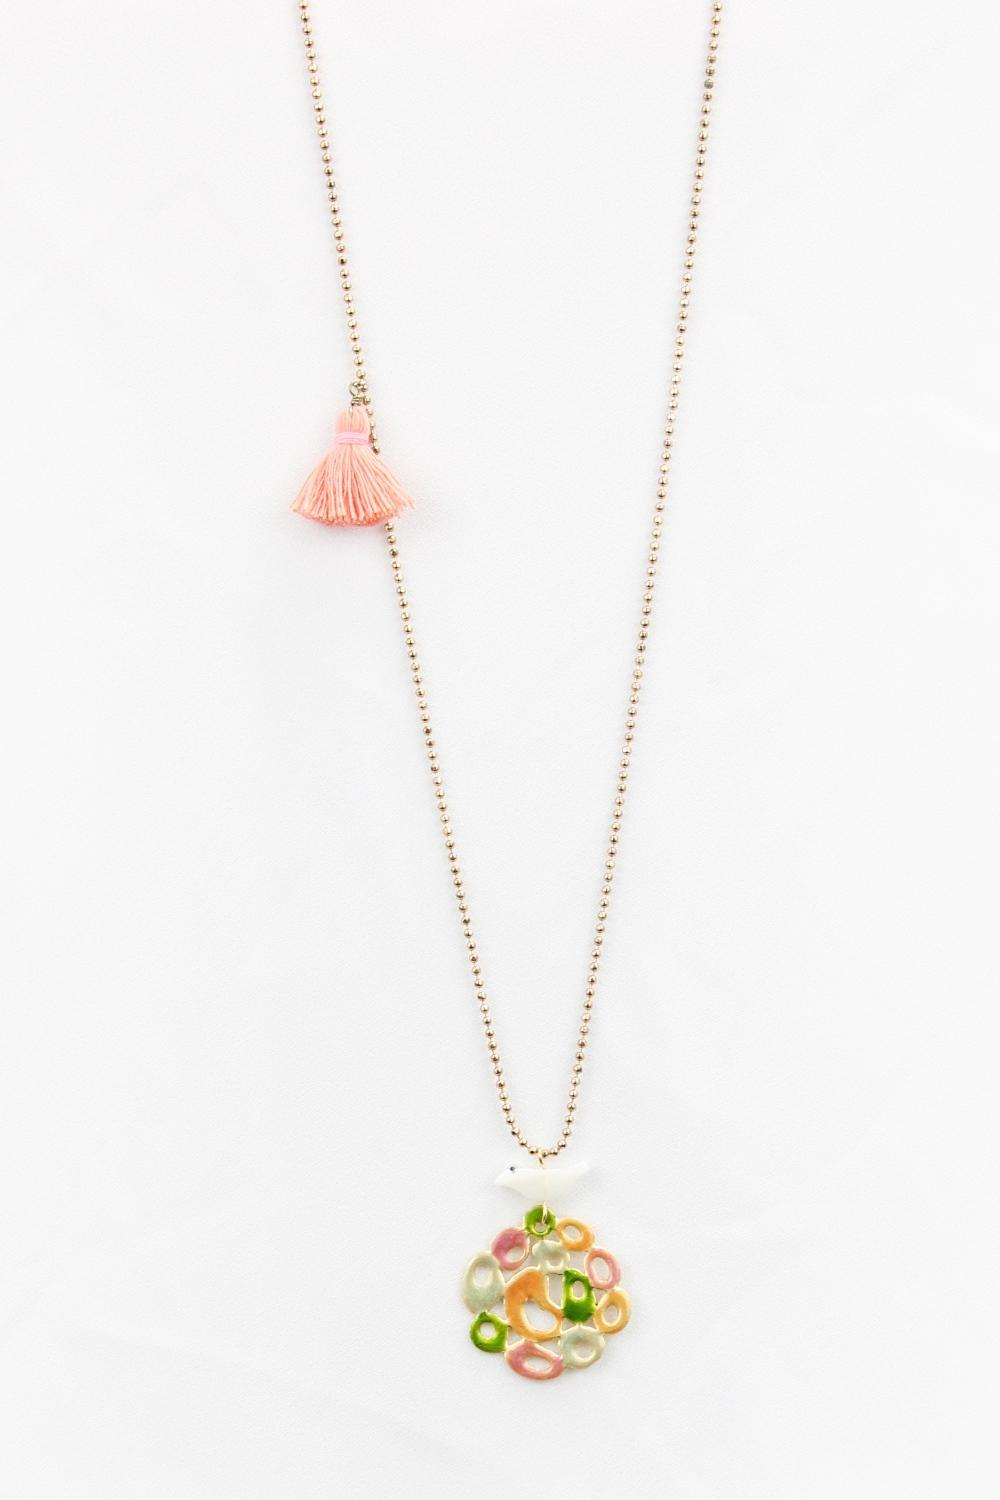 Gold Plated Necklace With A Sweet White Bird